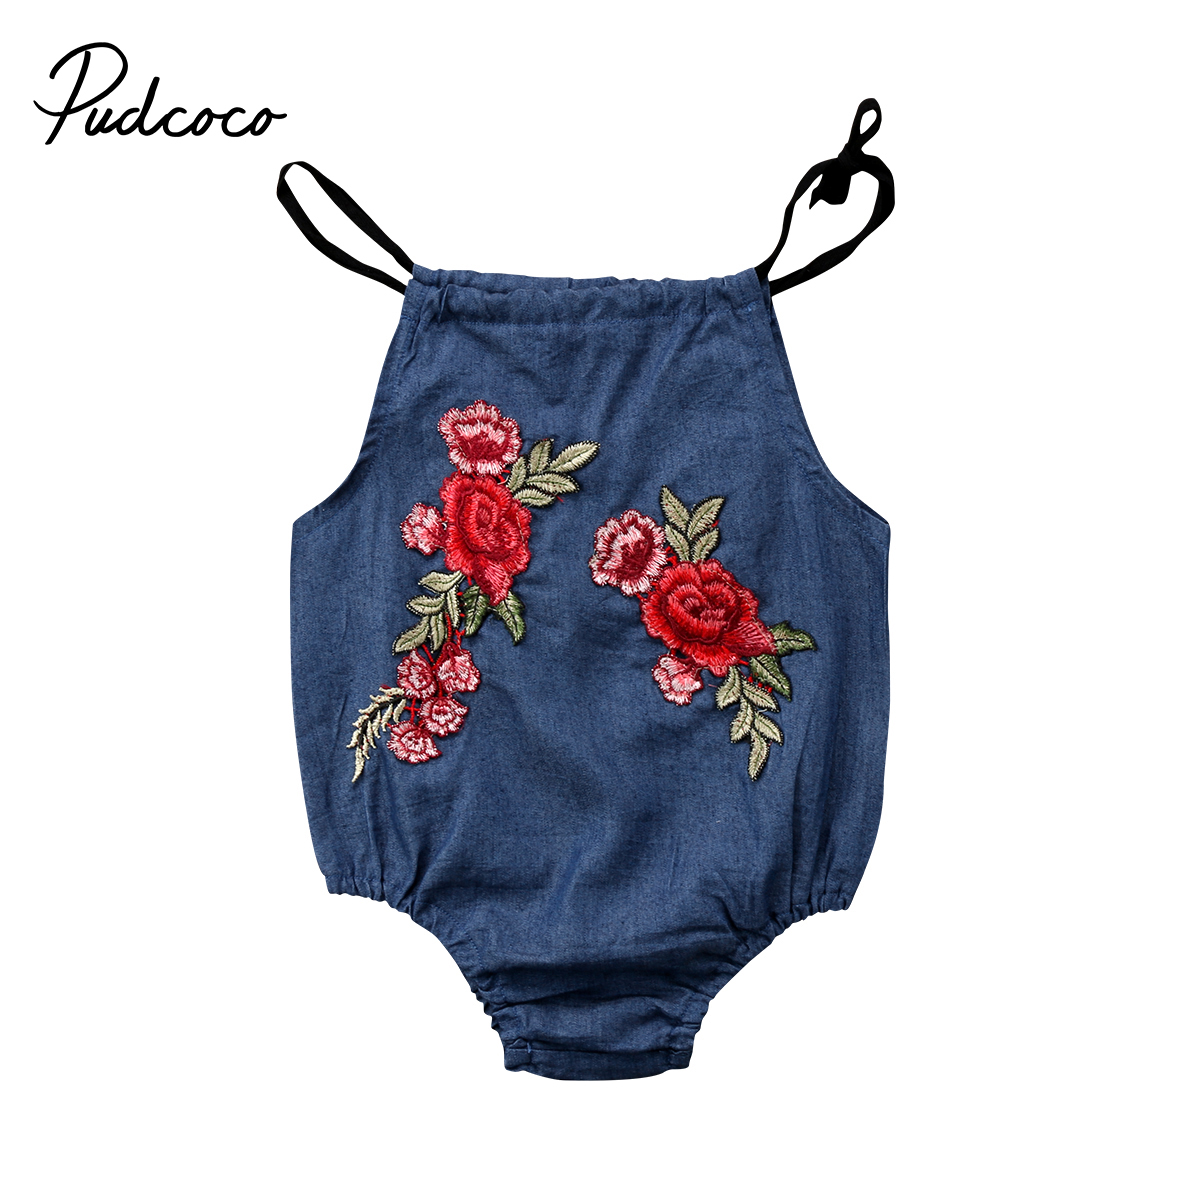 Lovely Baby Clothing Newborn Infant Baby Girl Denim Sleeveless Clothes Floral Romper Jumpsuit Playuist 0-2T